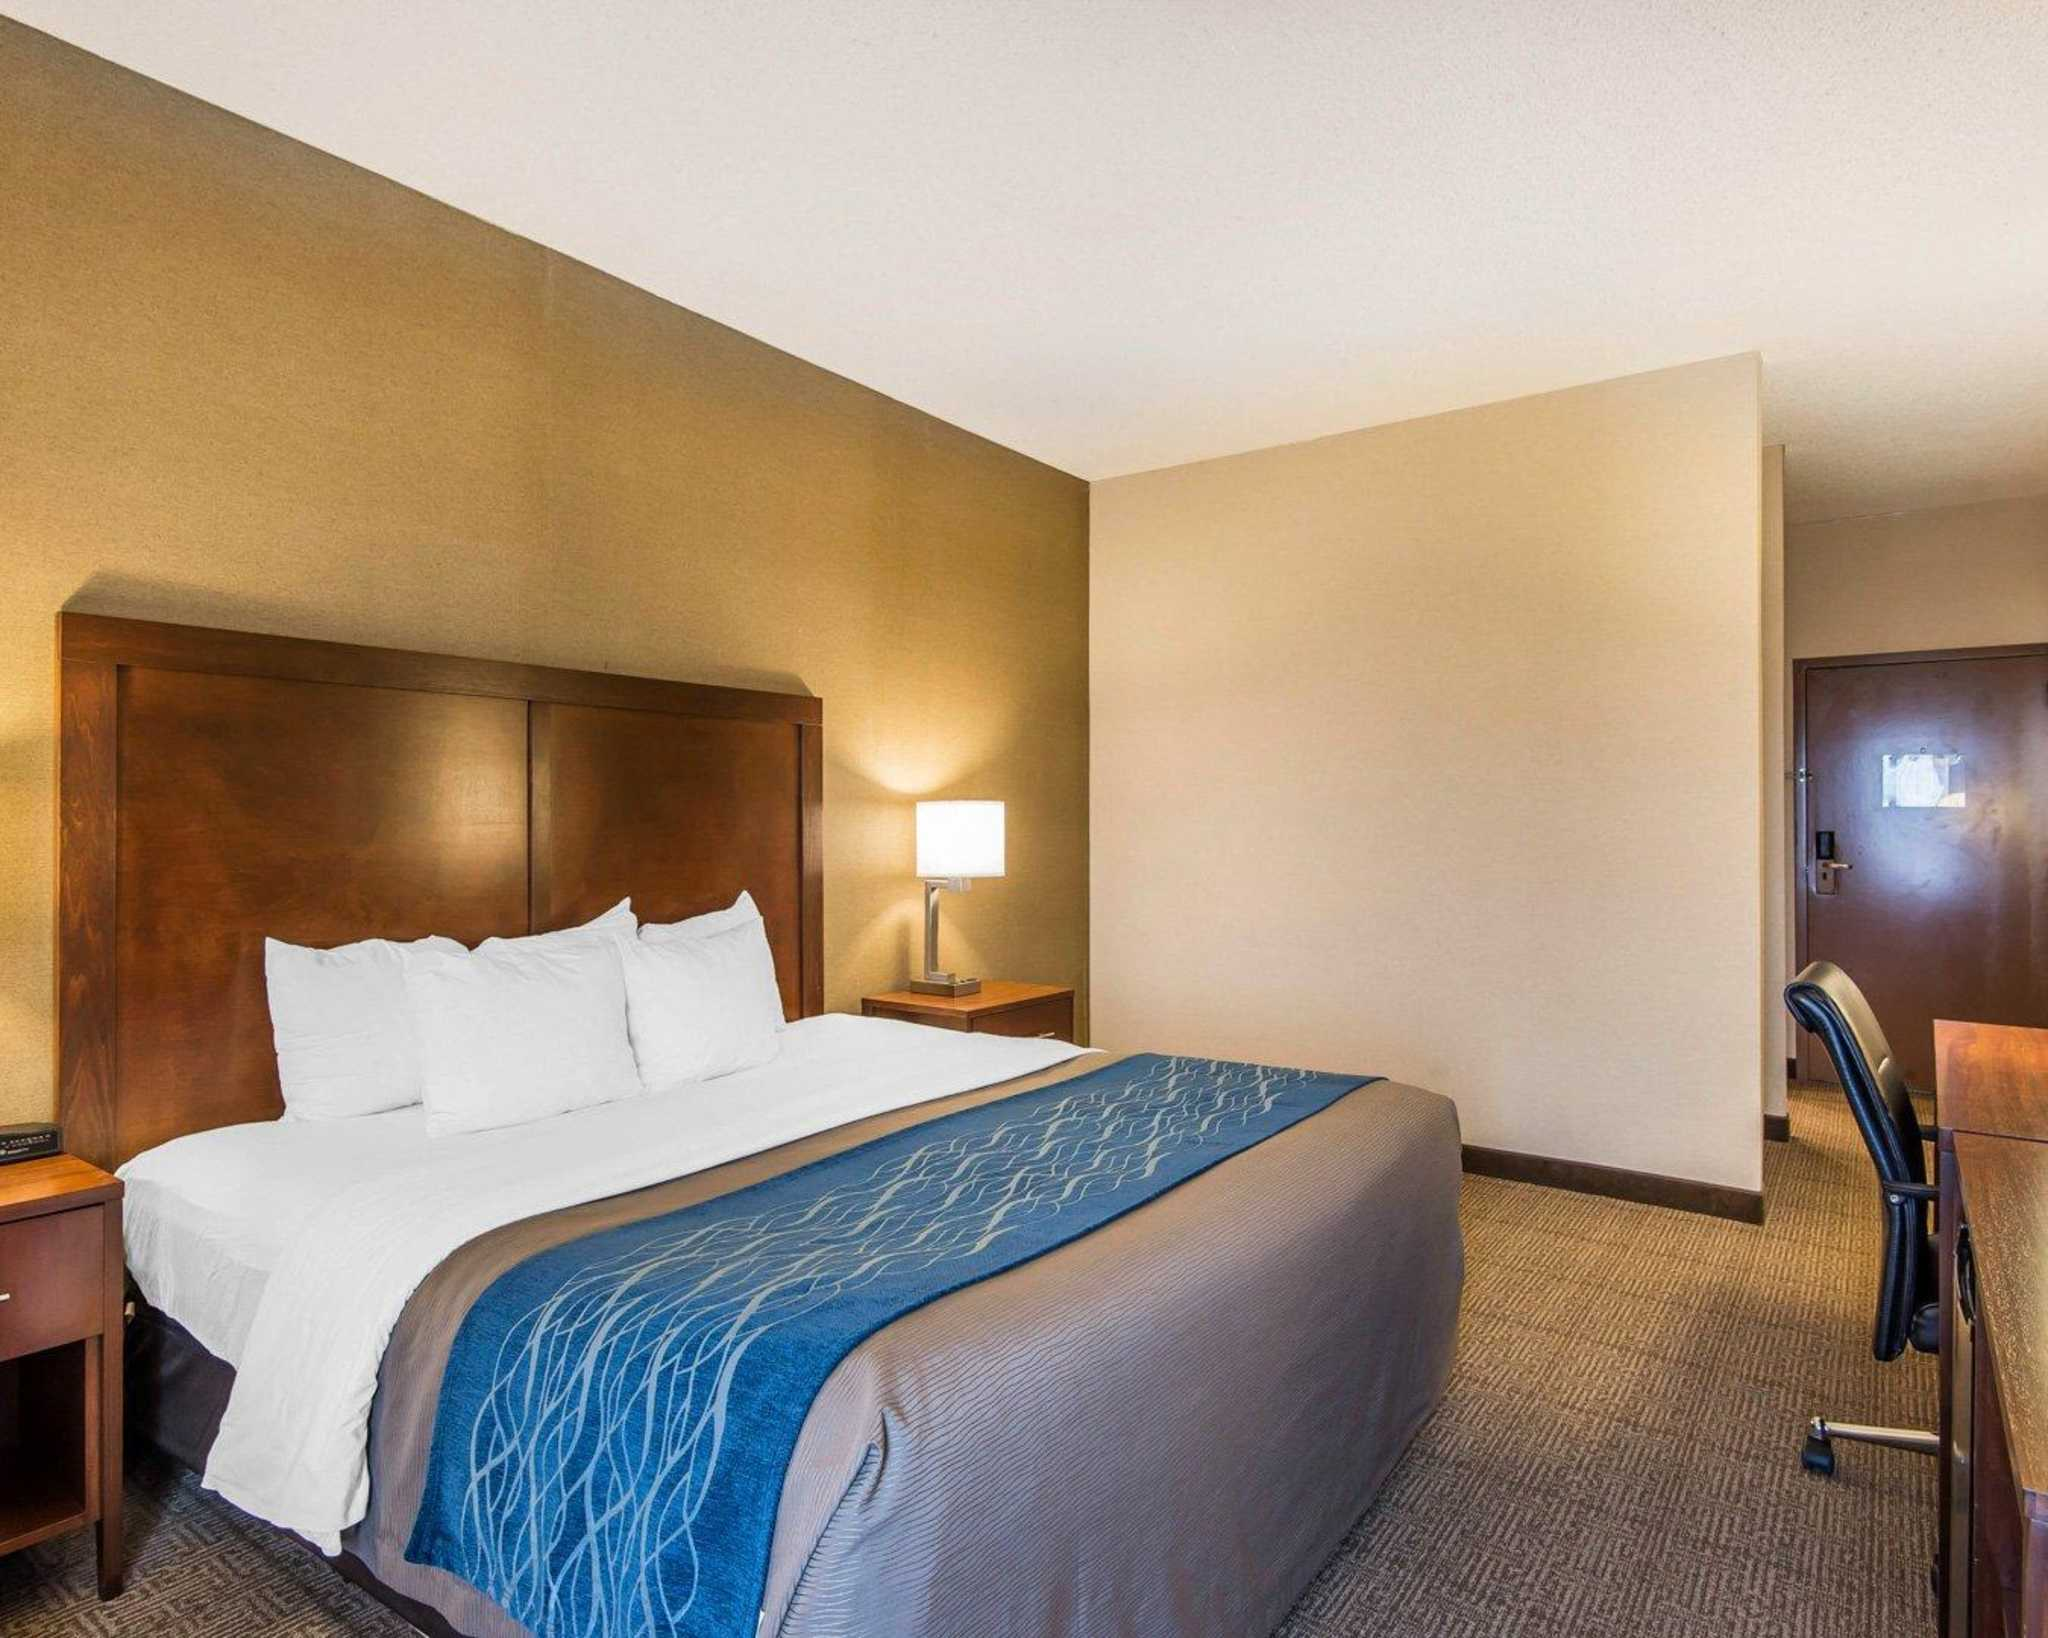 Discount coupons for hotels in cameron missouri